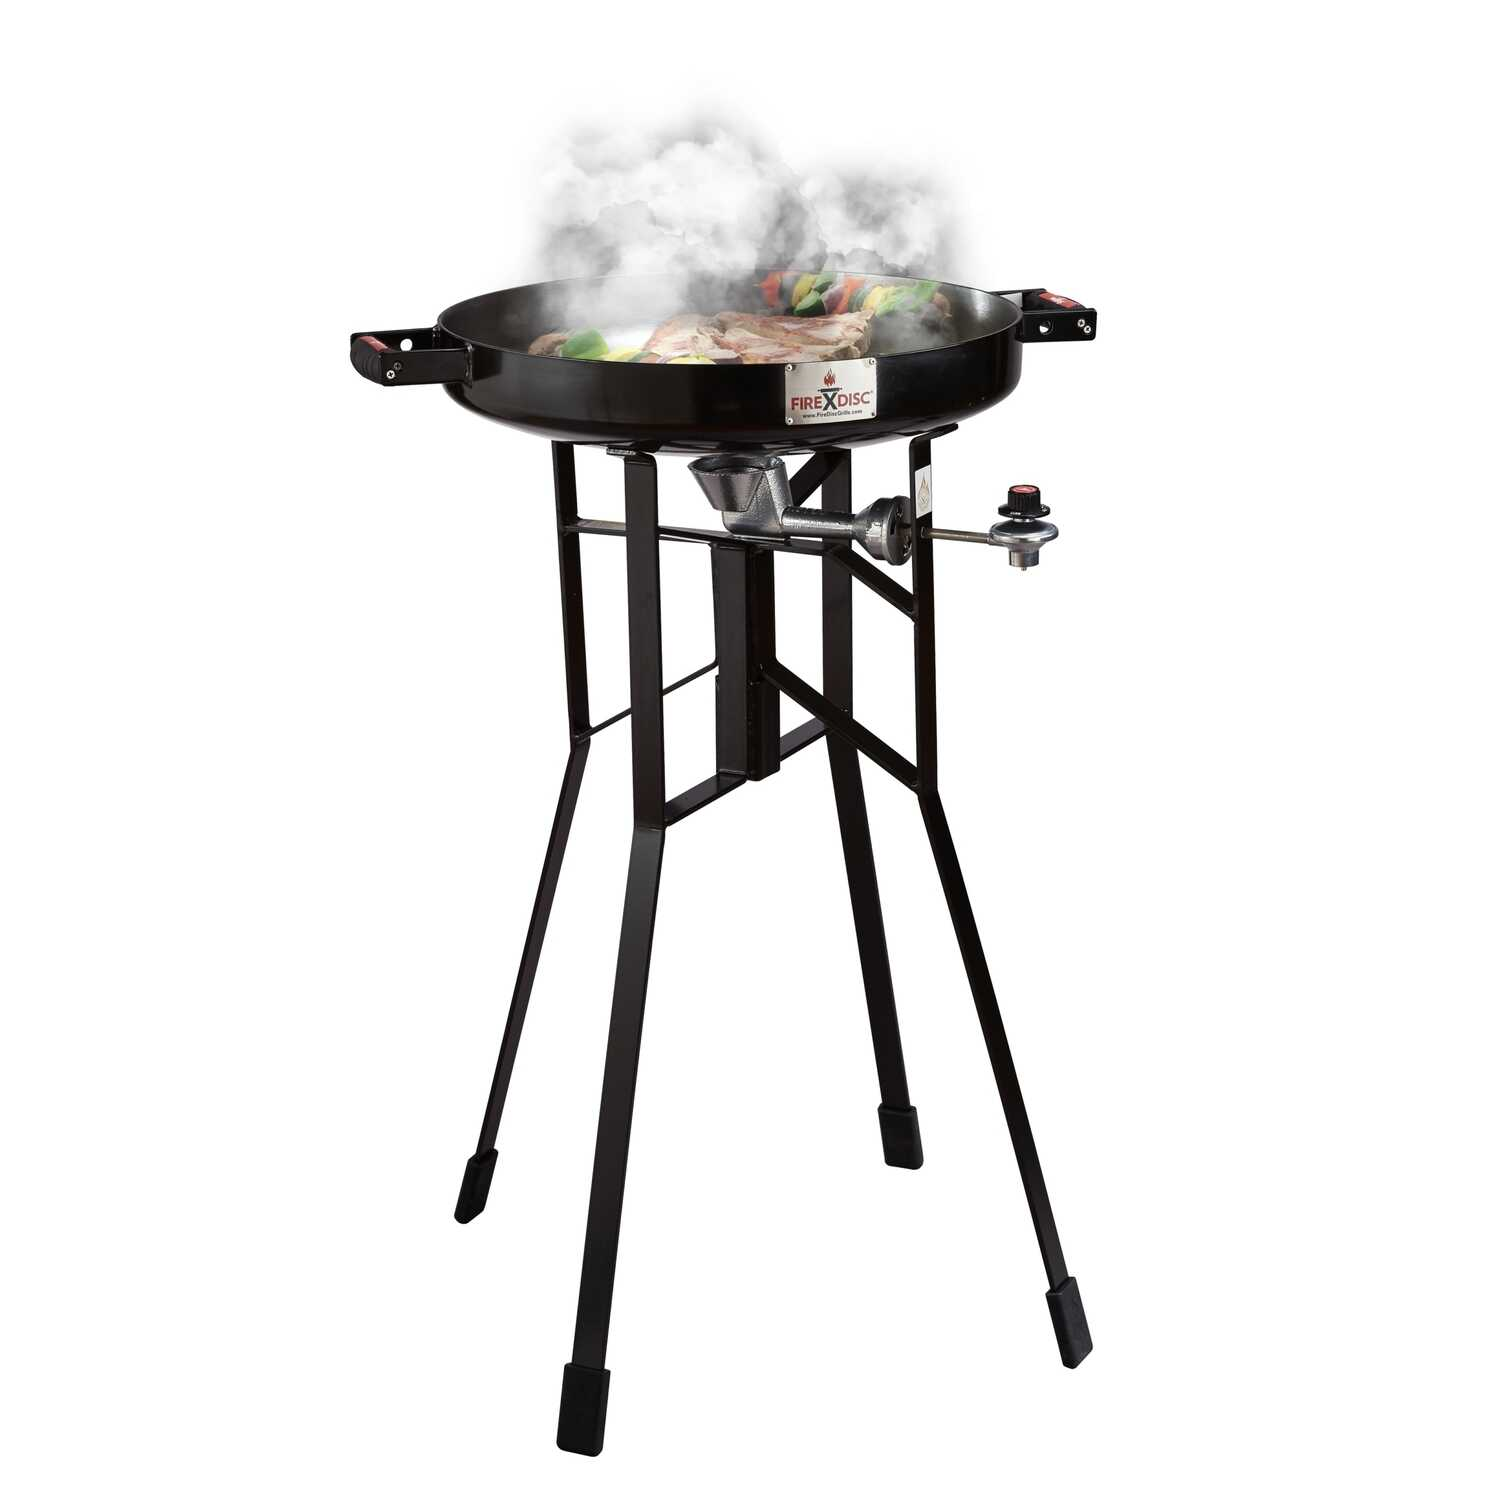 FireDisc  1 burners Propane  Grill  Black  40000 BTU